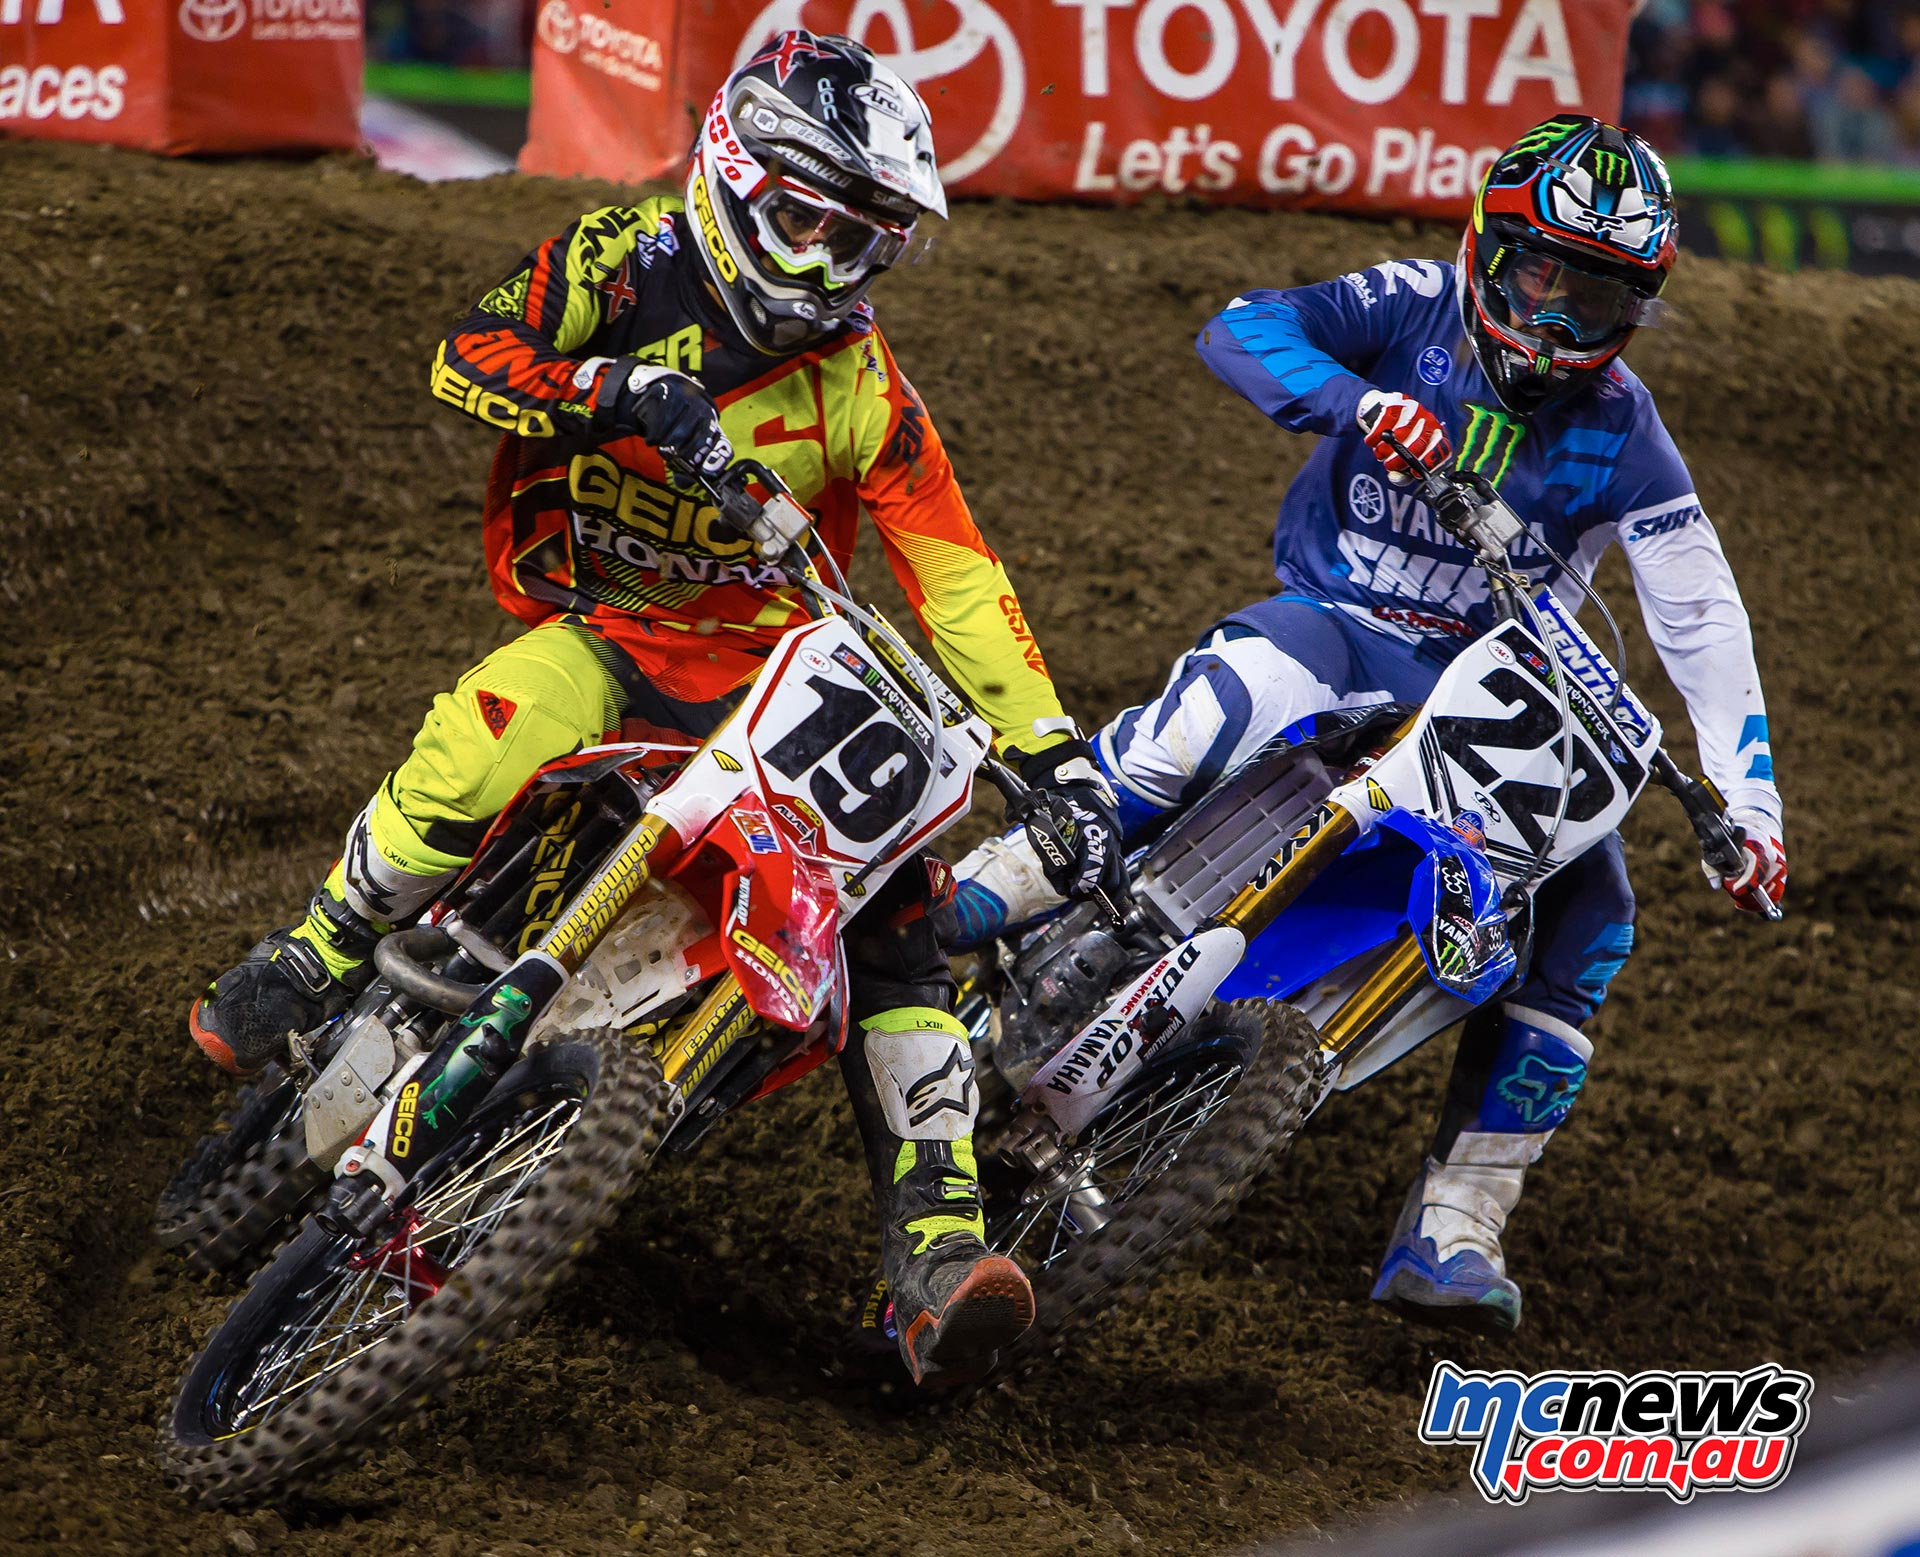 Justin Bogle tussling with Chad Reed at Santa Clara earlier this year. Image by Hoppenworld